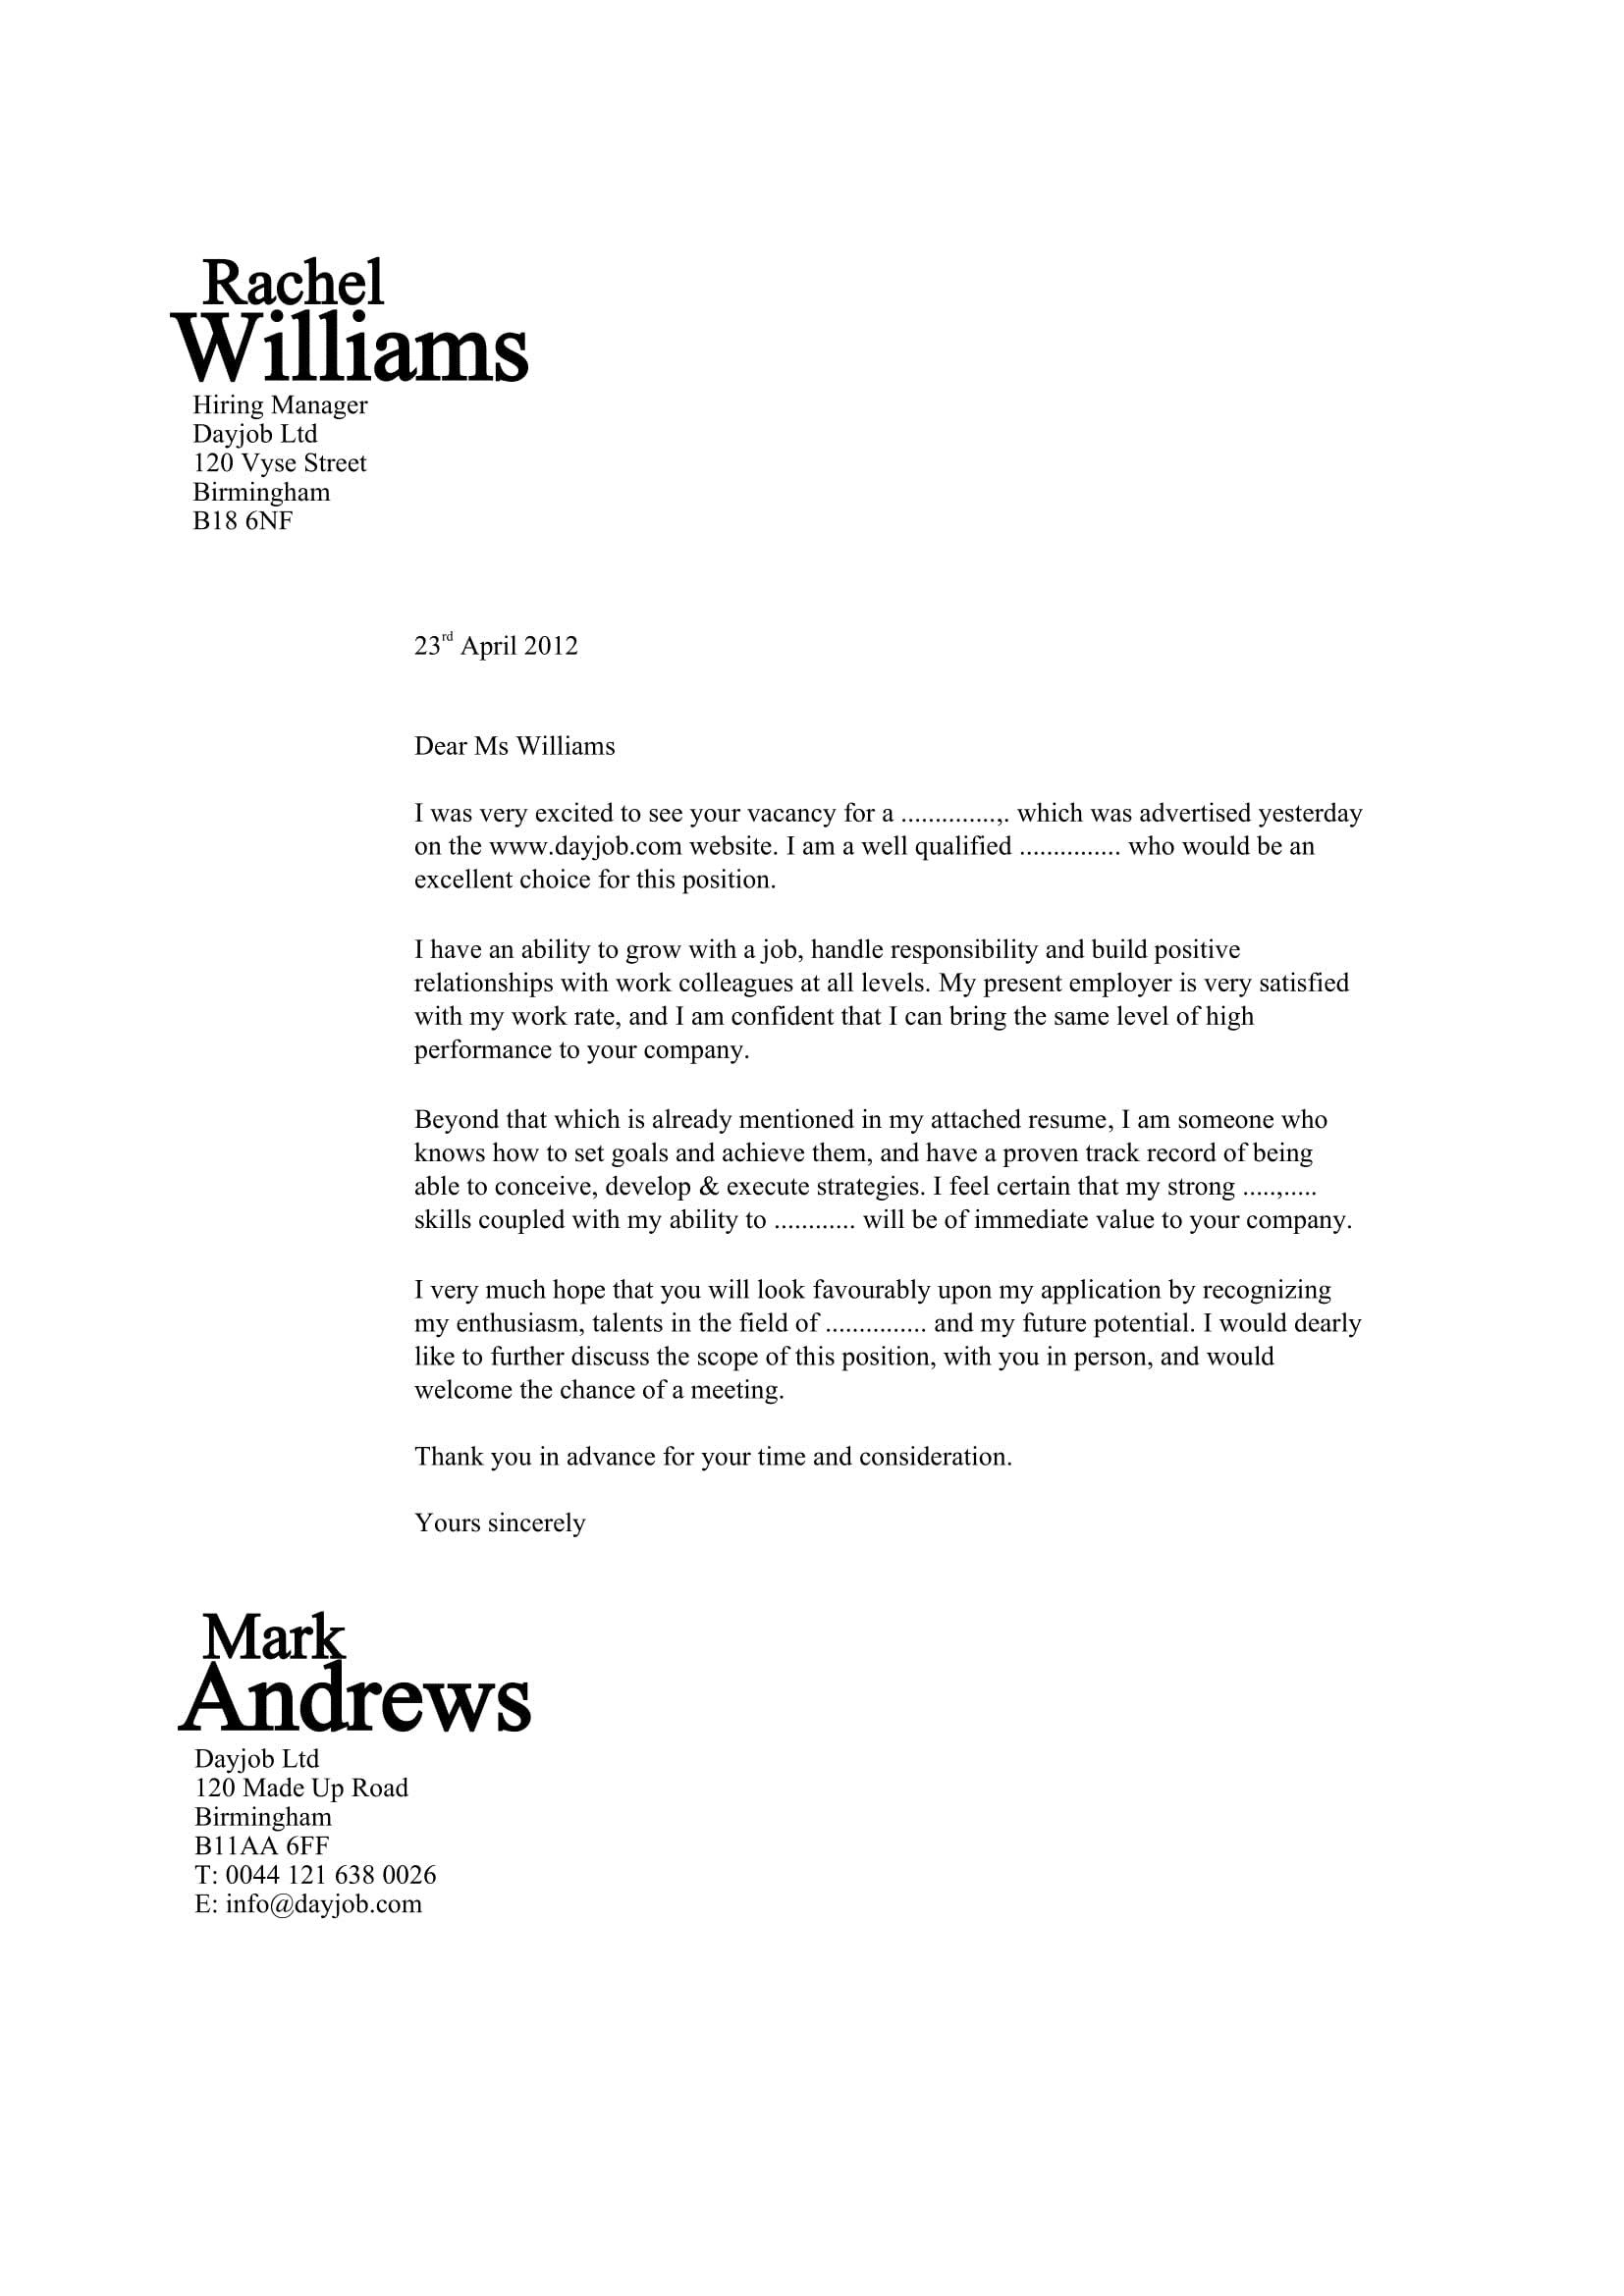 007 Beautiful Best Covering Letter Example Sample  Examples UkFull